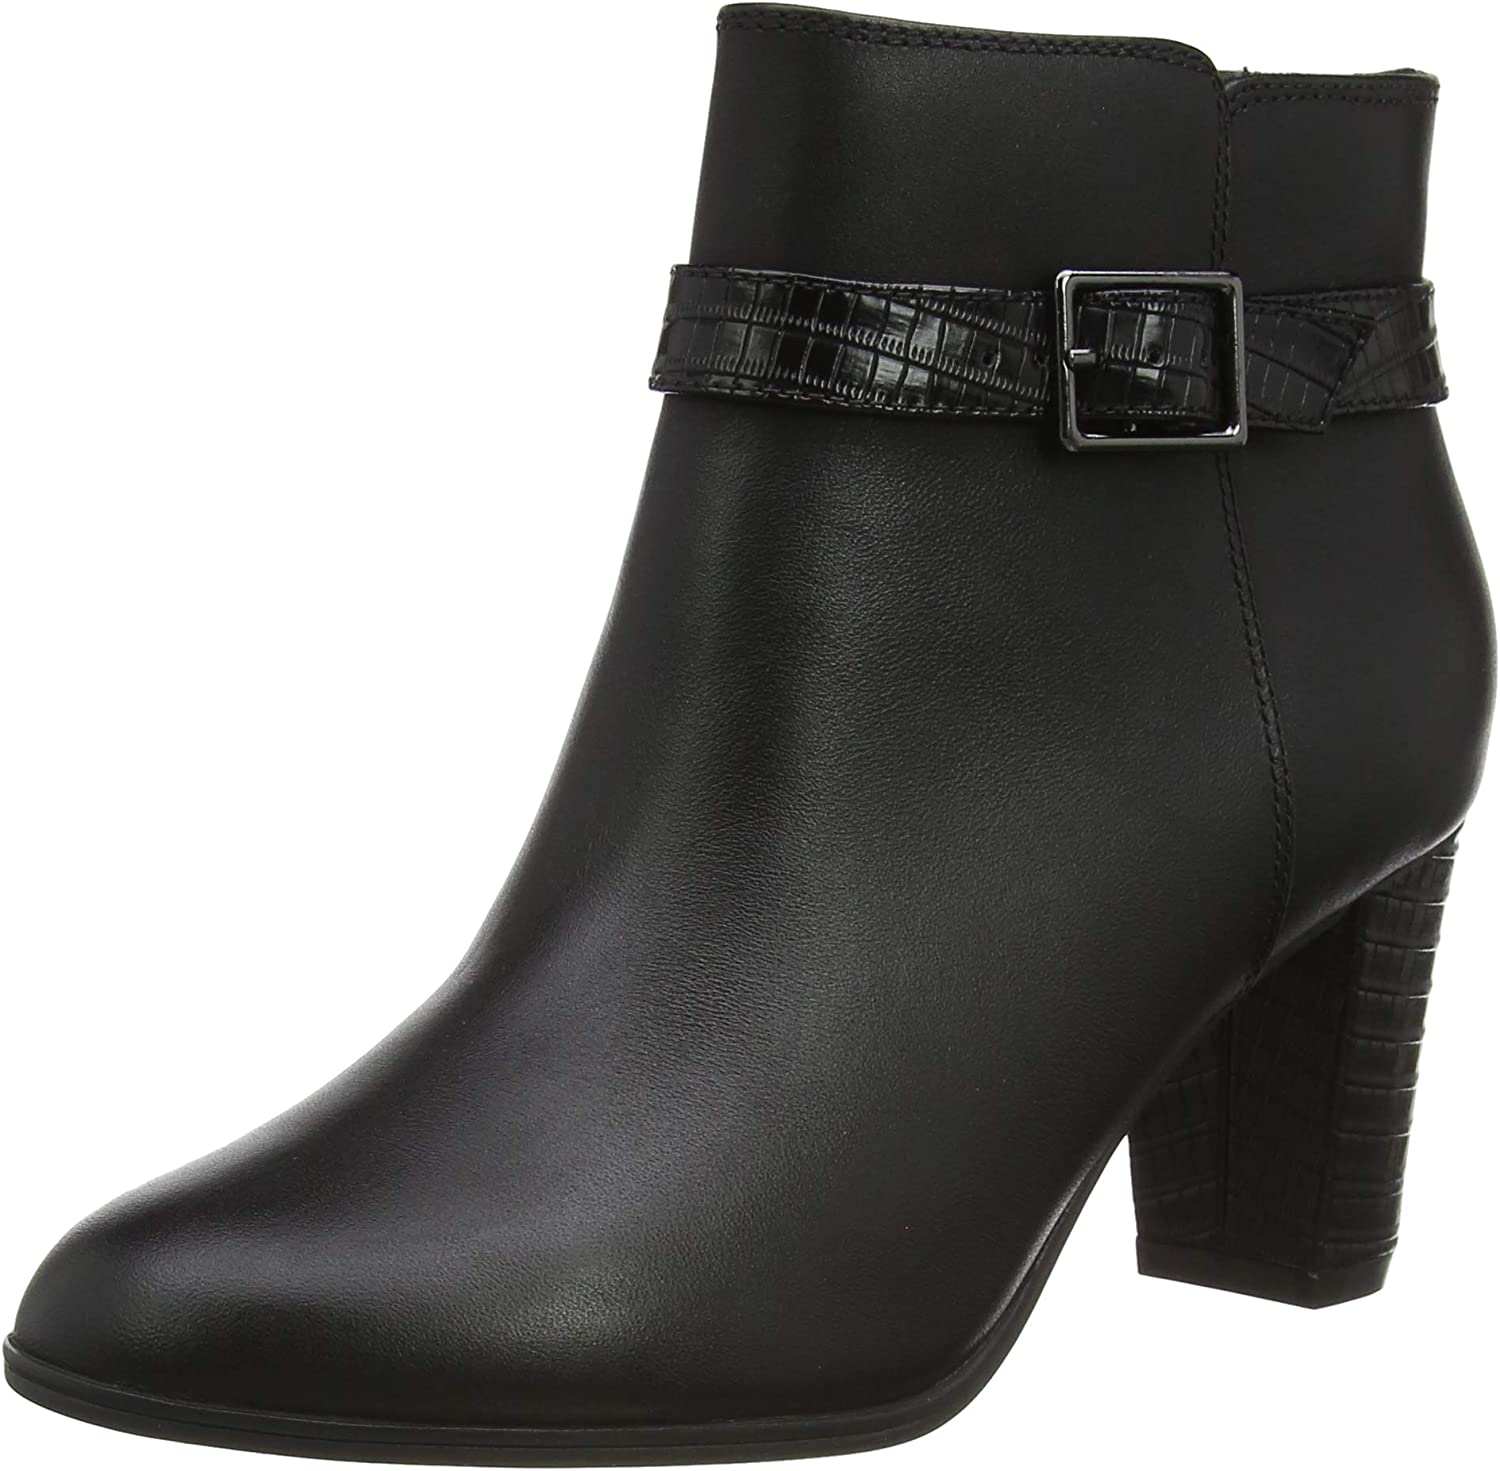 Clarks Max 57% OFF Women's Alayna Juno Ankle Boot Black Combi Tucson Mall